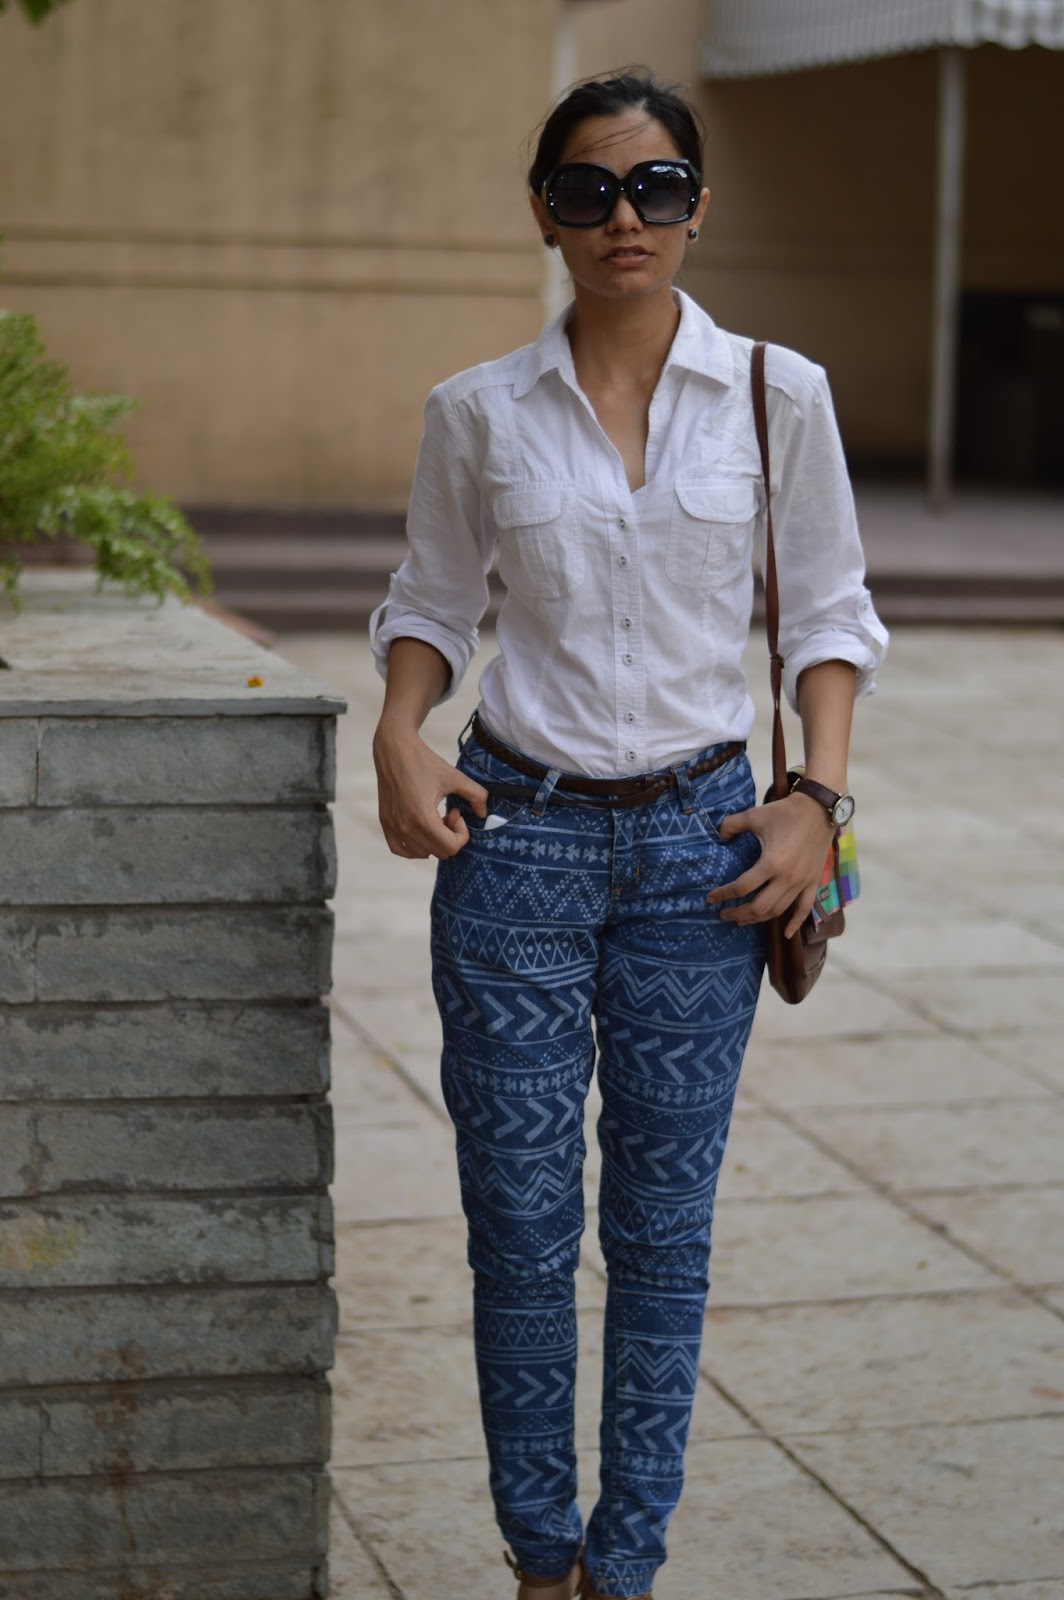 5 simple ways to wear a White Shirt and Aztec Print Jeans ...